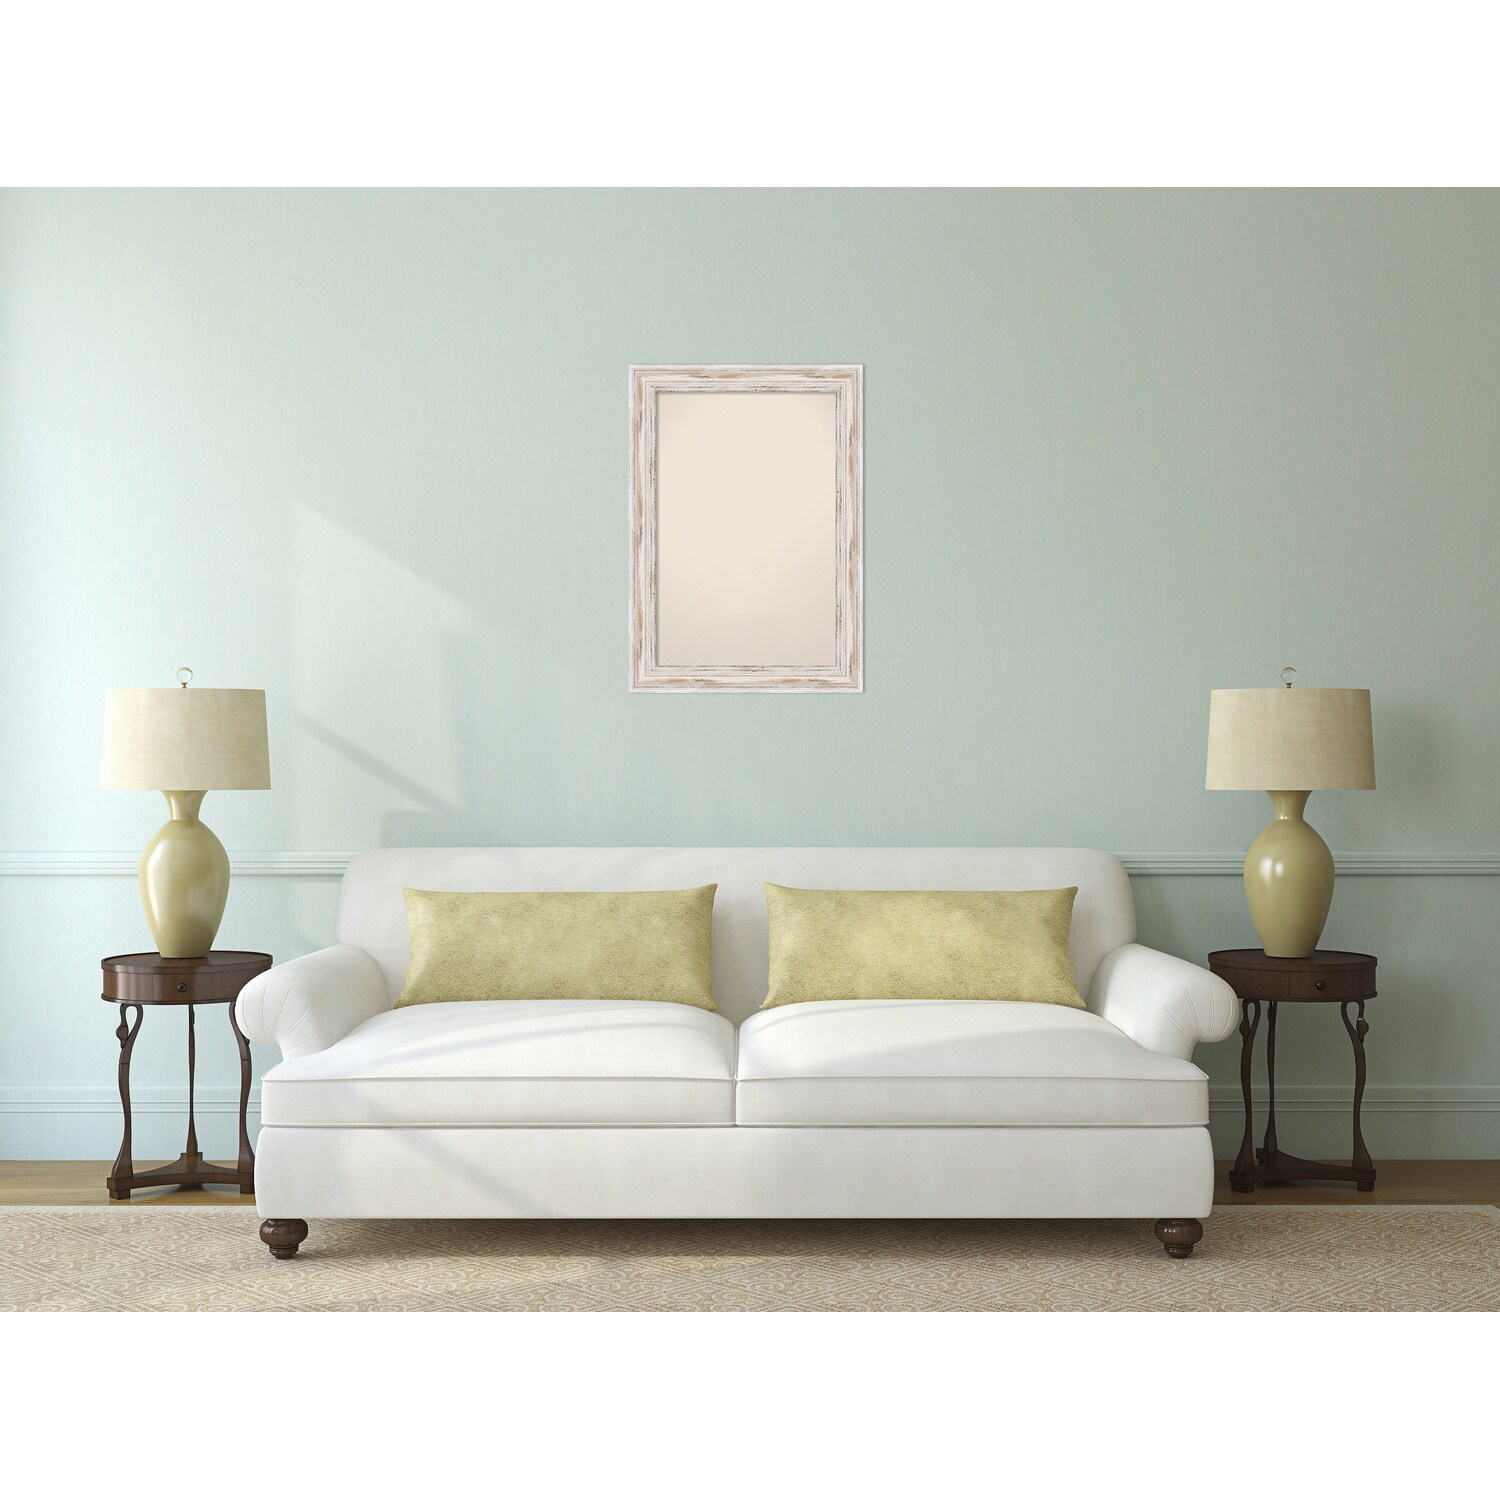 Dorable What Size Frame For A 20x30 Picture Photos - Framed Art ...